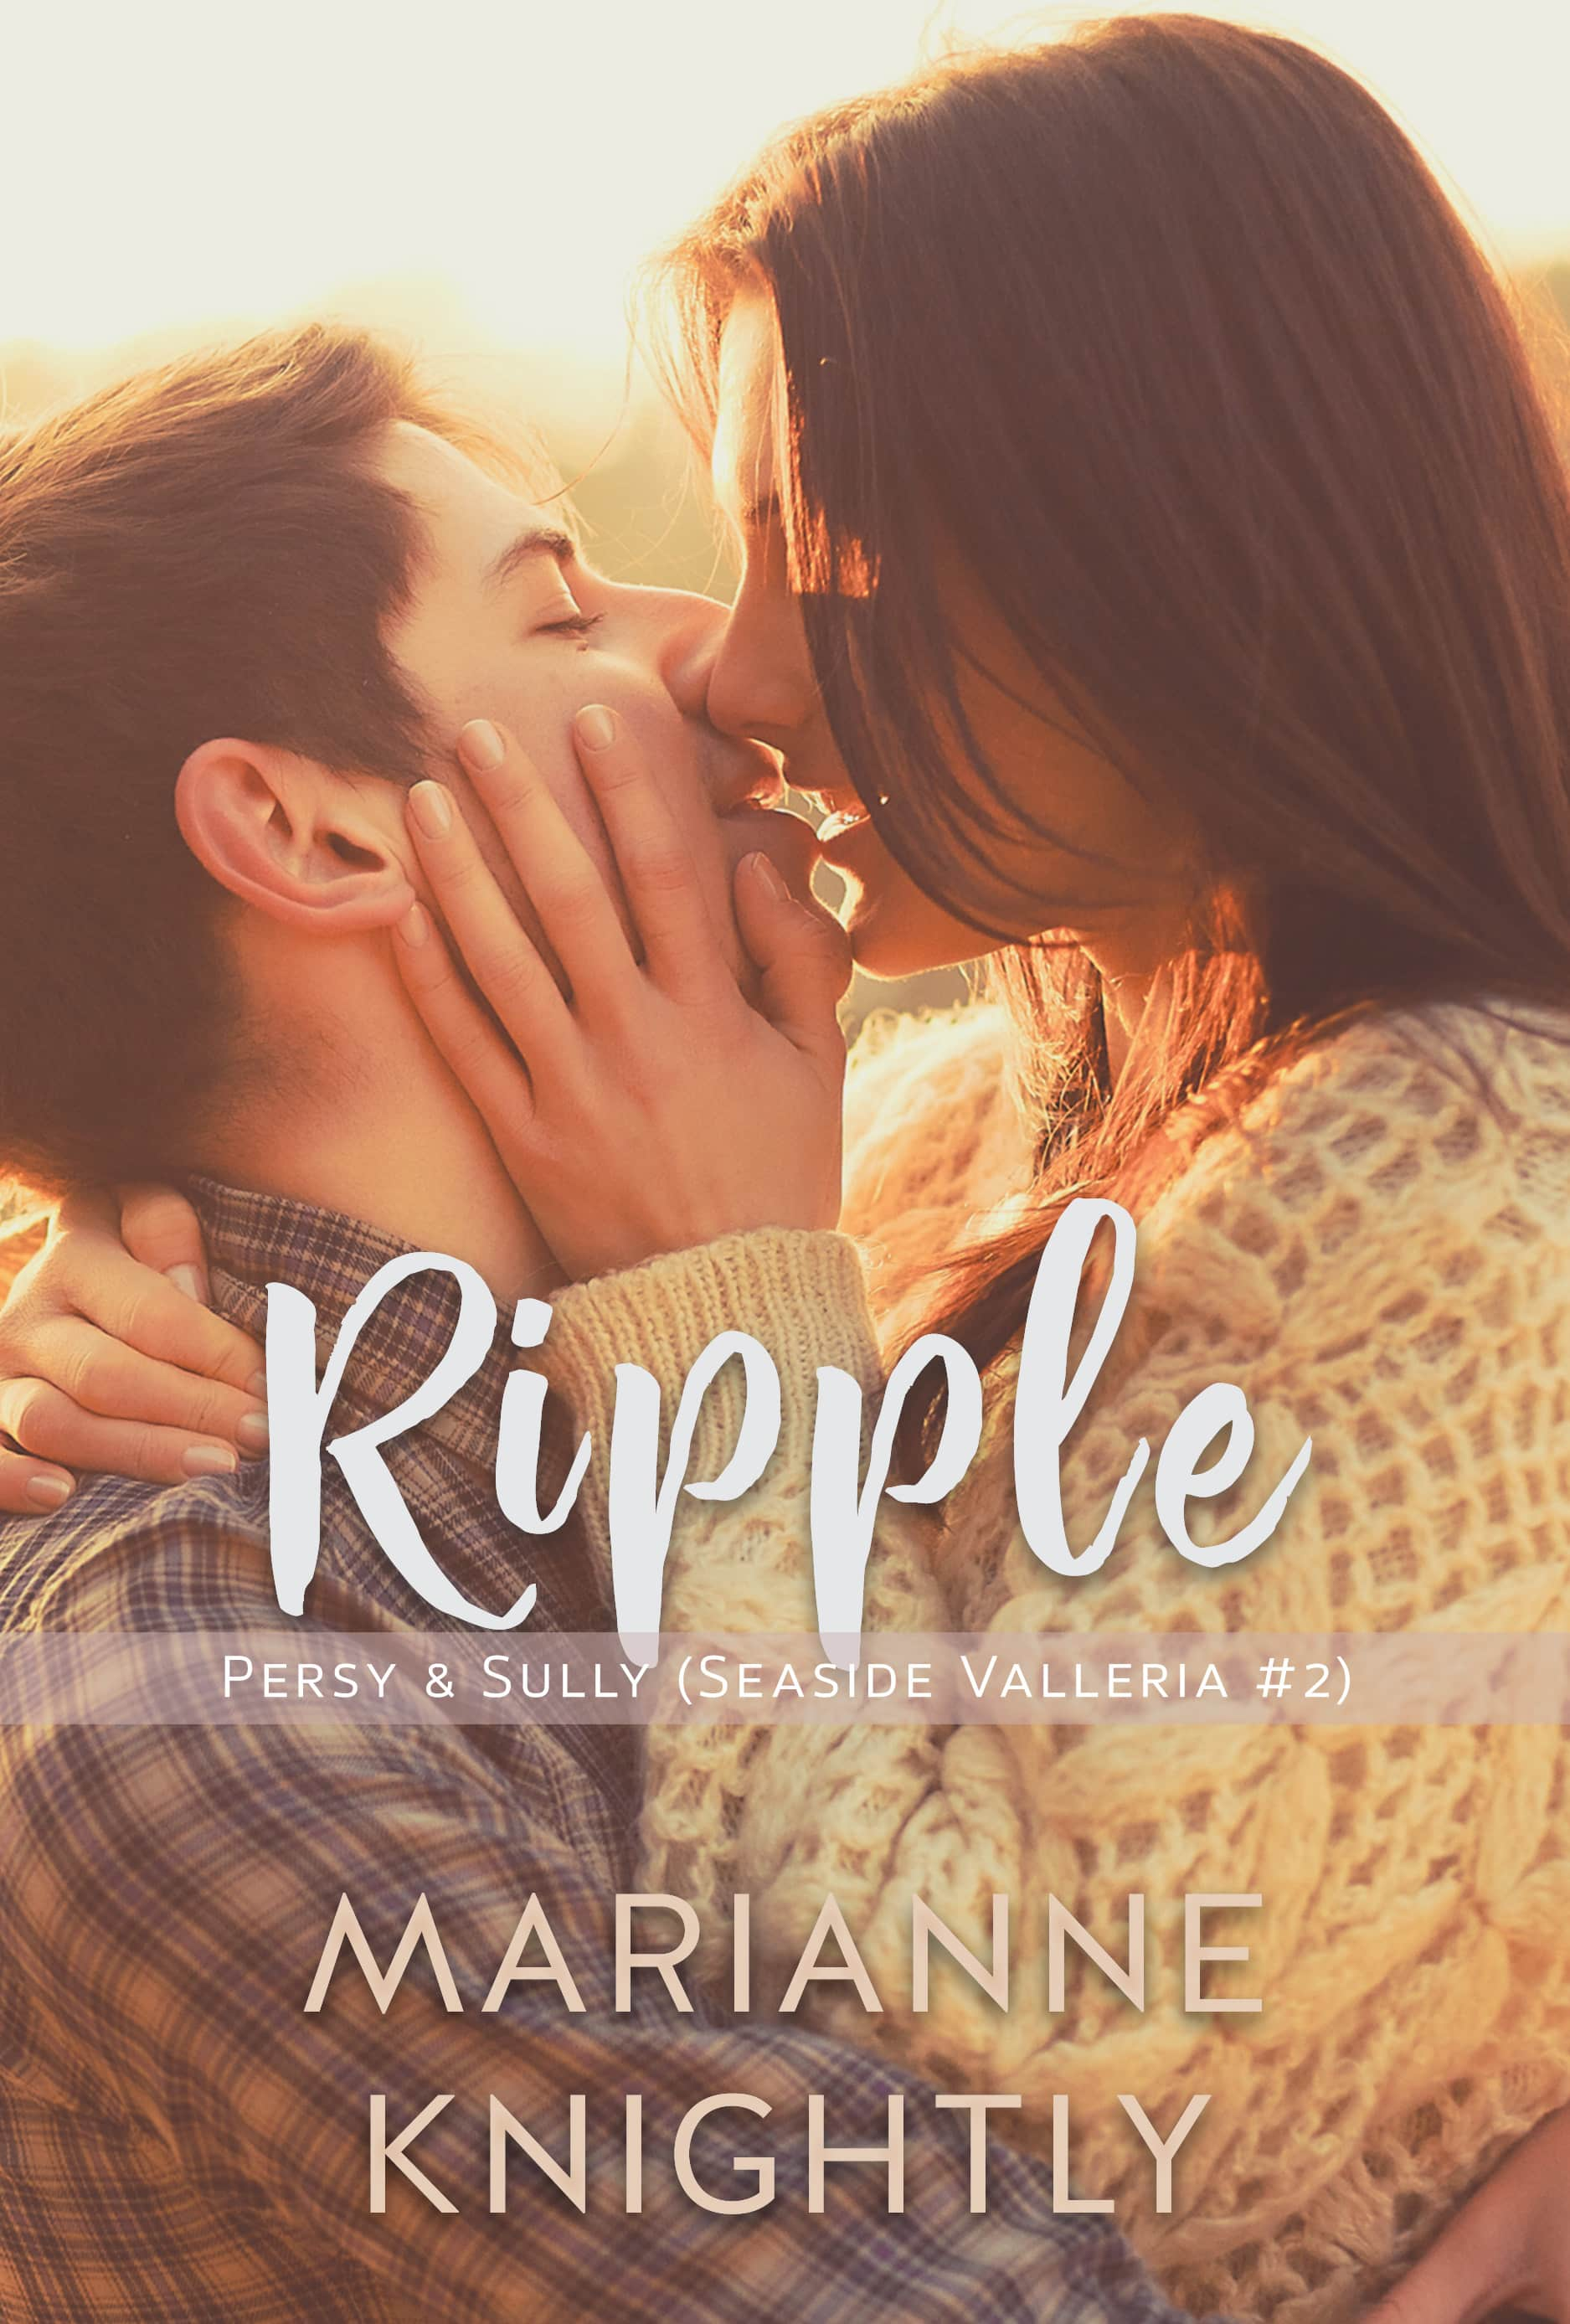 Ripple (Persy & Sully) (Seaside Valleria #2)